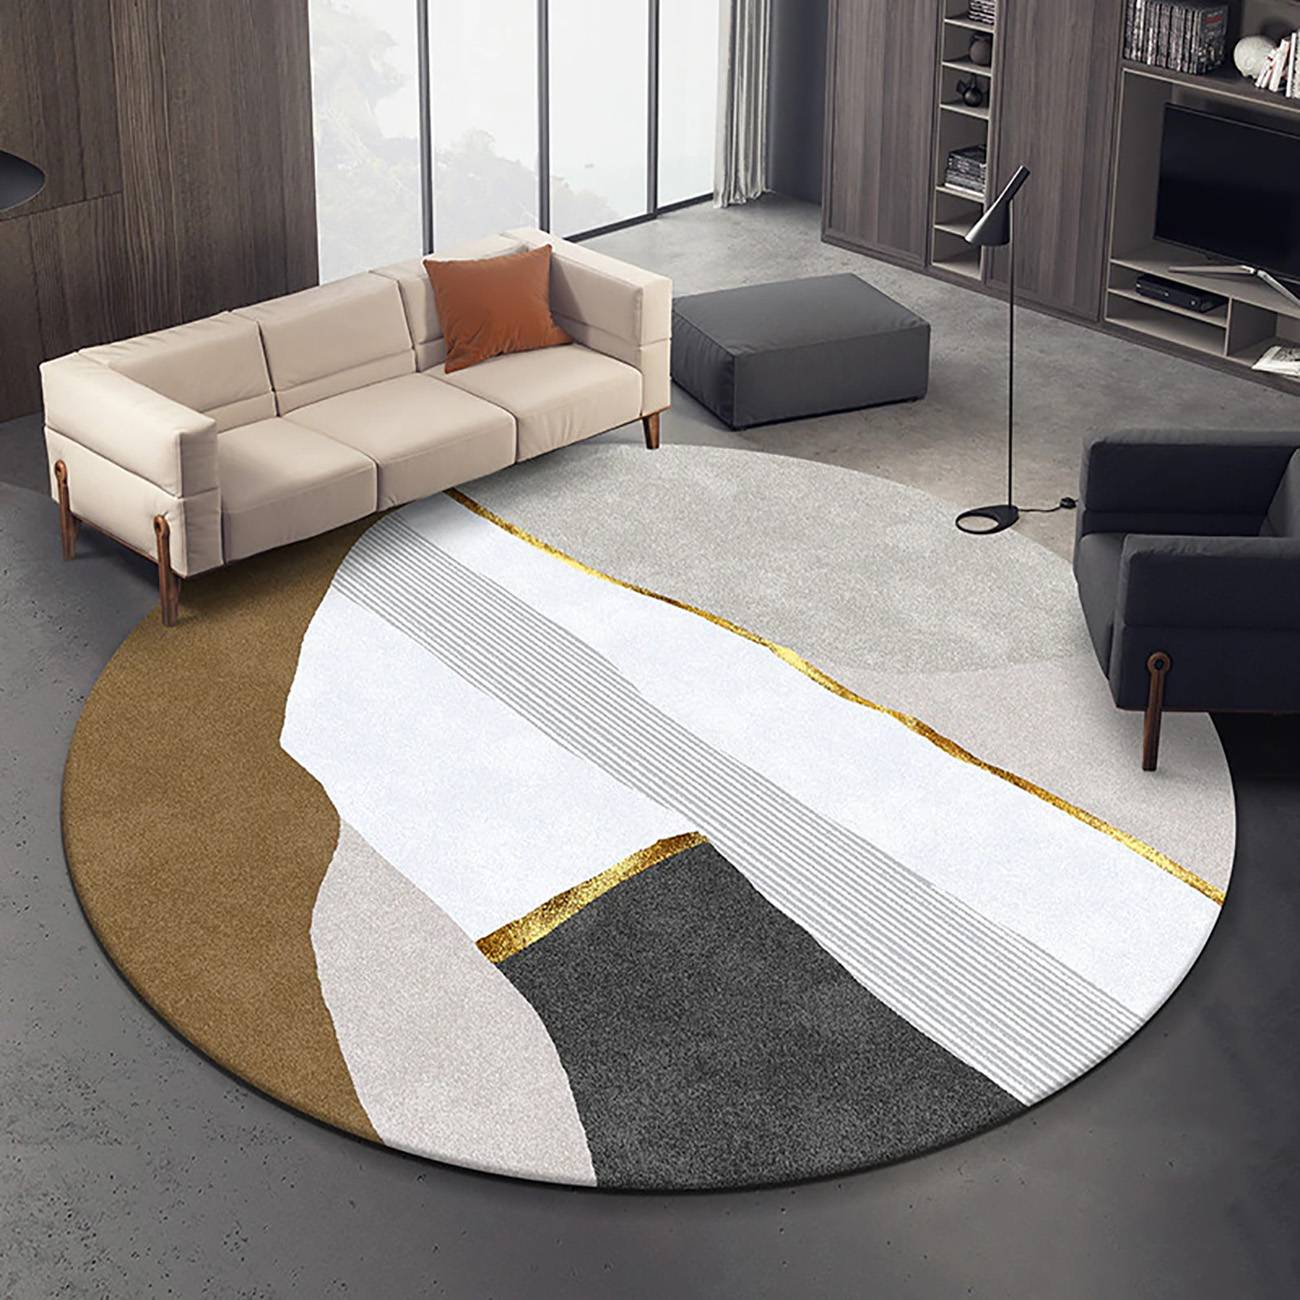 abstract rugs, commercial flooring, flooring interior, office carpet